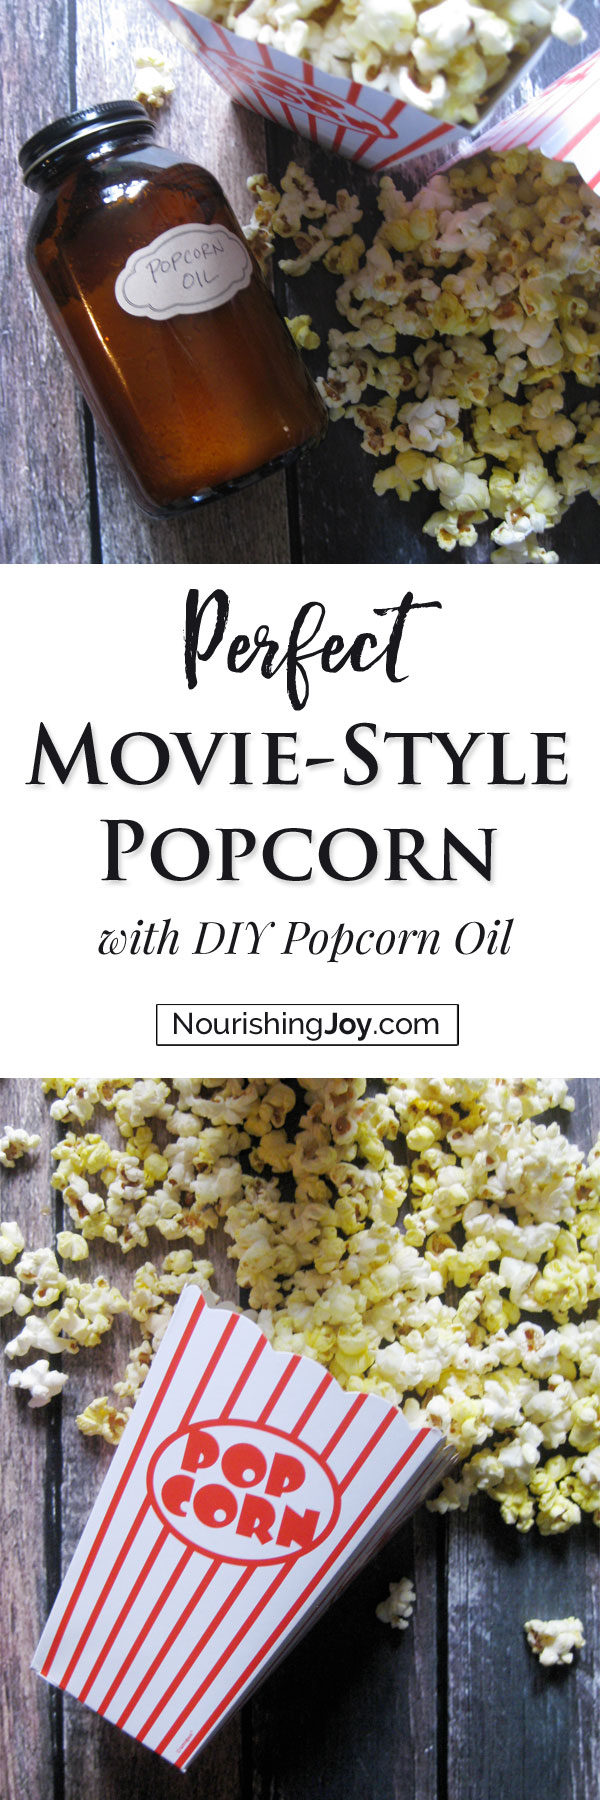 Make your own healthy DIY popcorn oil for delicious popcorn!